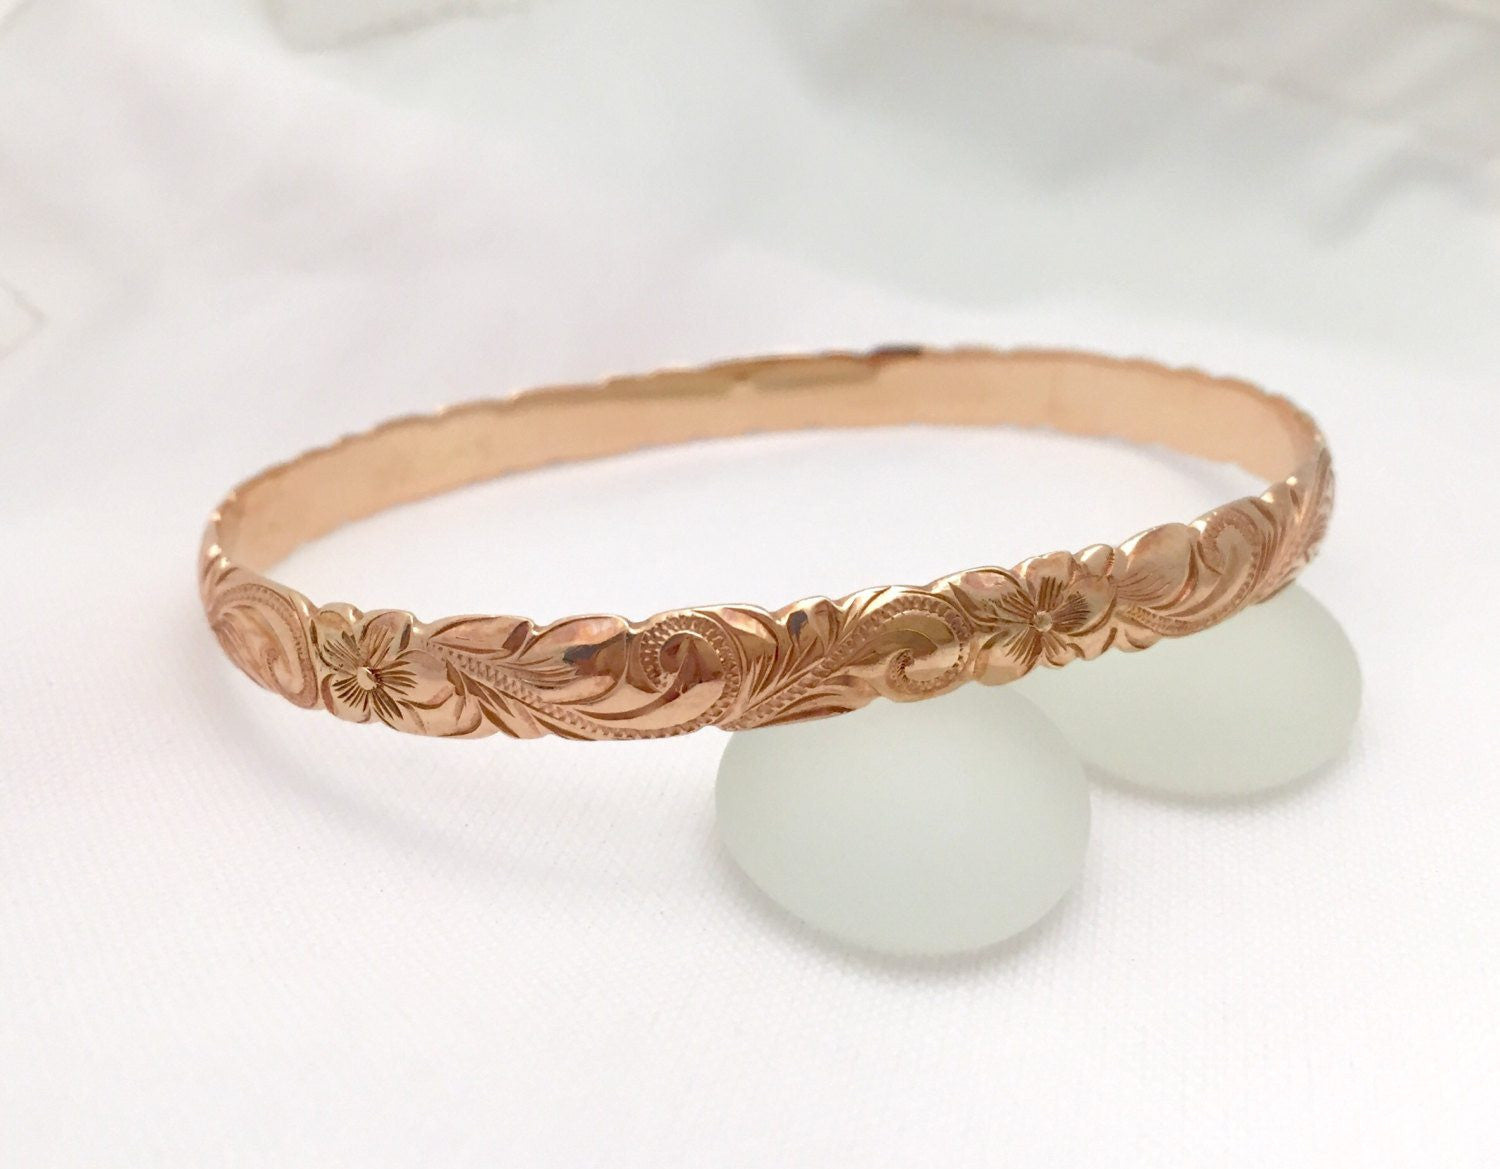 Traditional Hawaiian Hand Engraved 14k Gold Bracelet (6mm width, cutout design) - Aolani Hawaii - 1